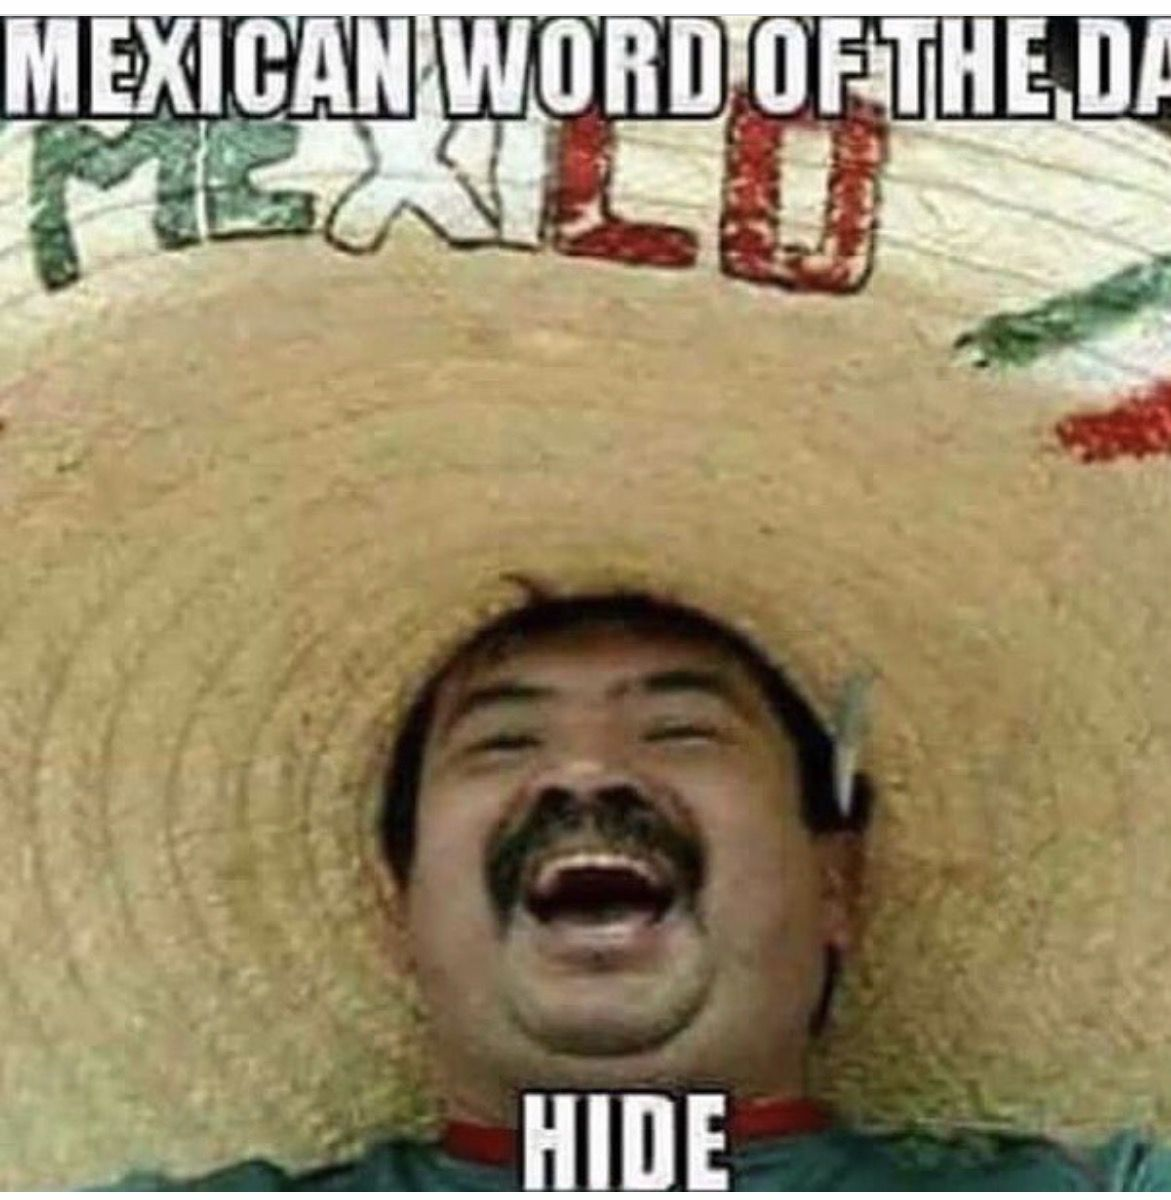 Pin by Karen Patterson on Mexican word of the day